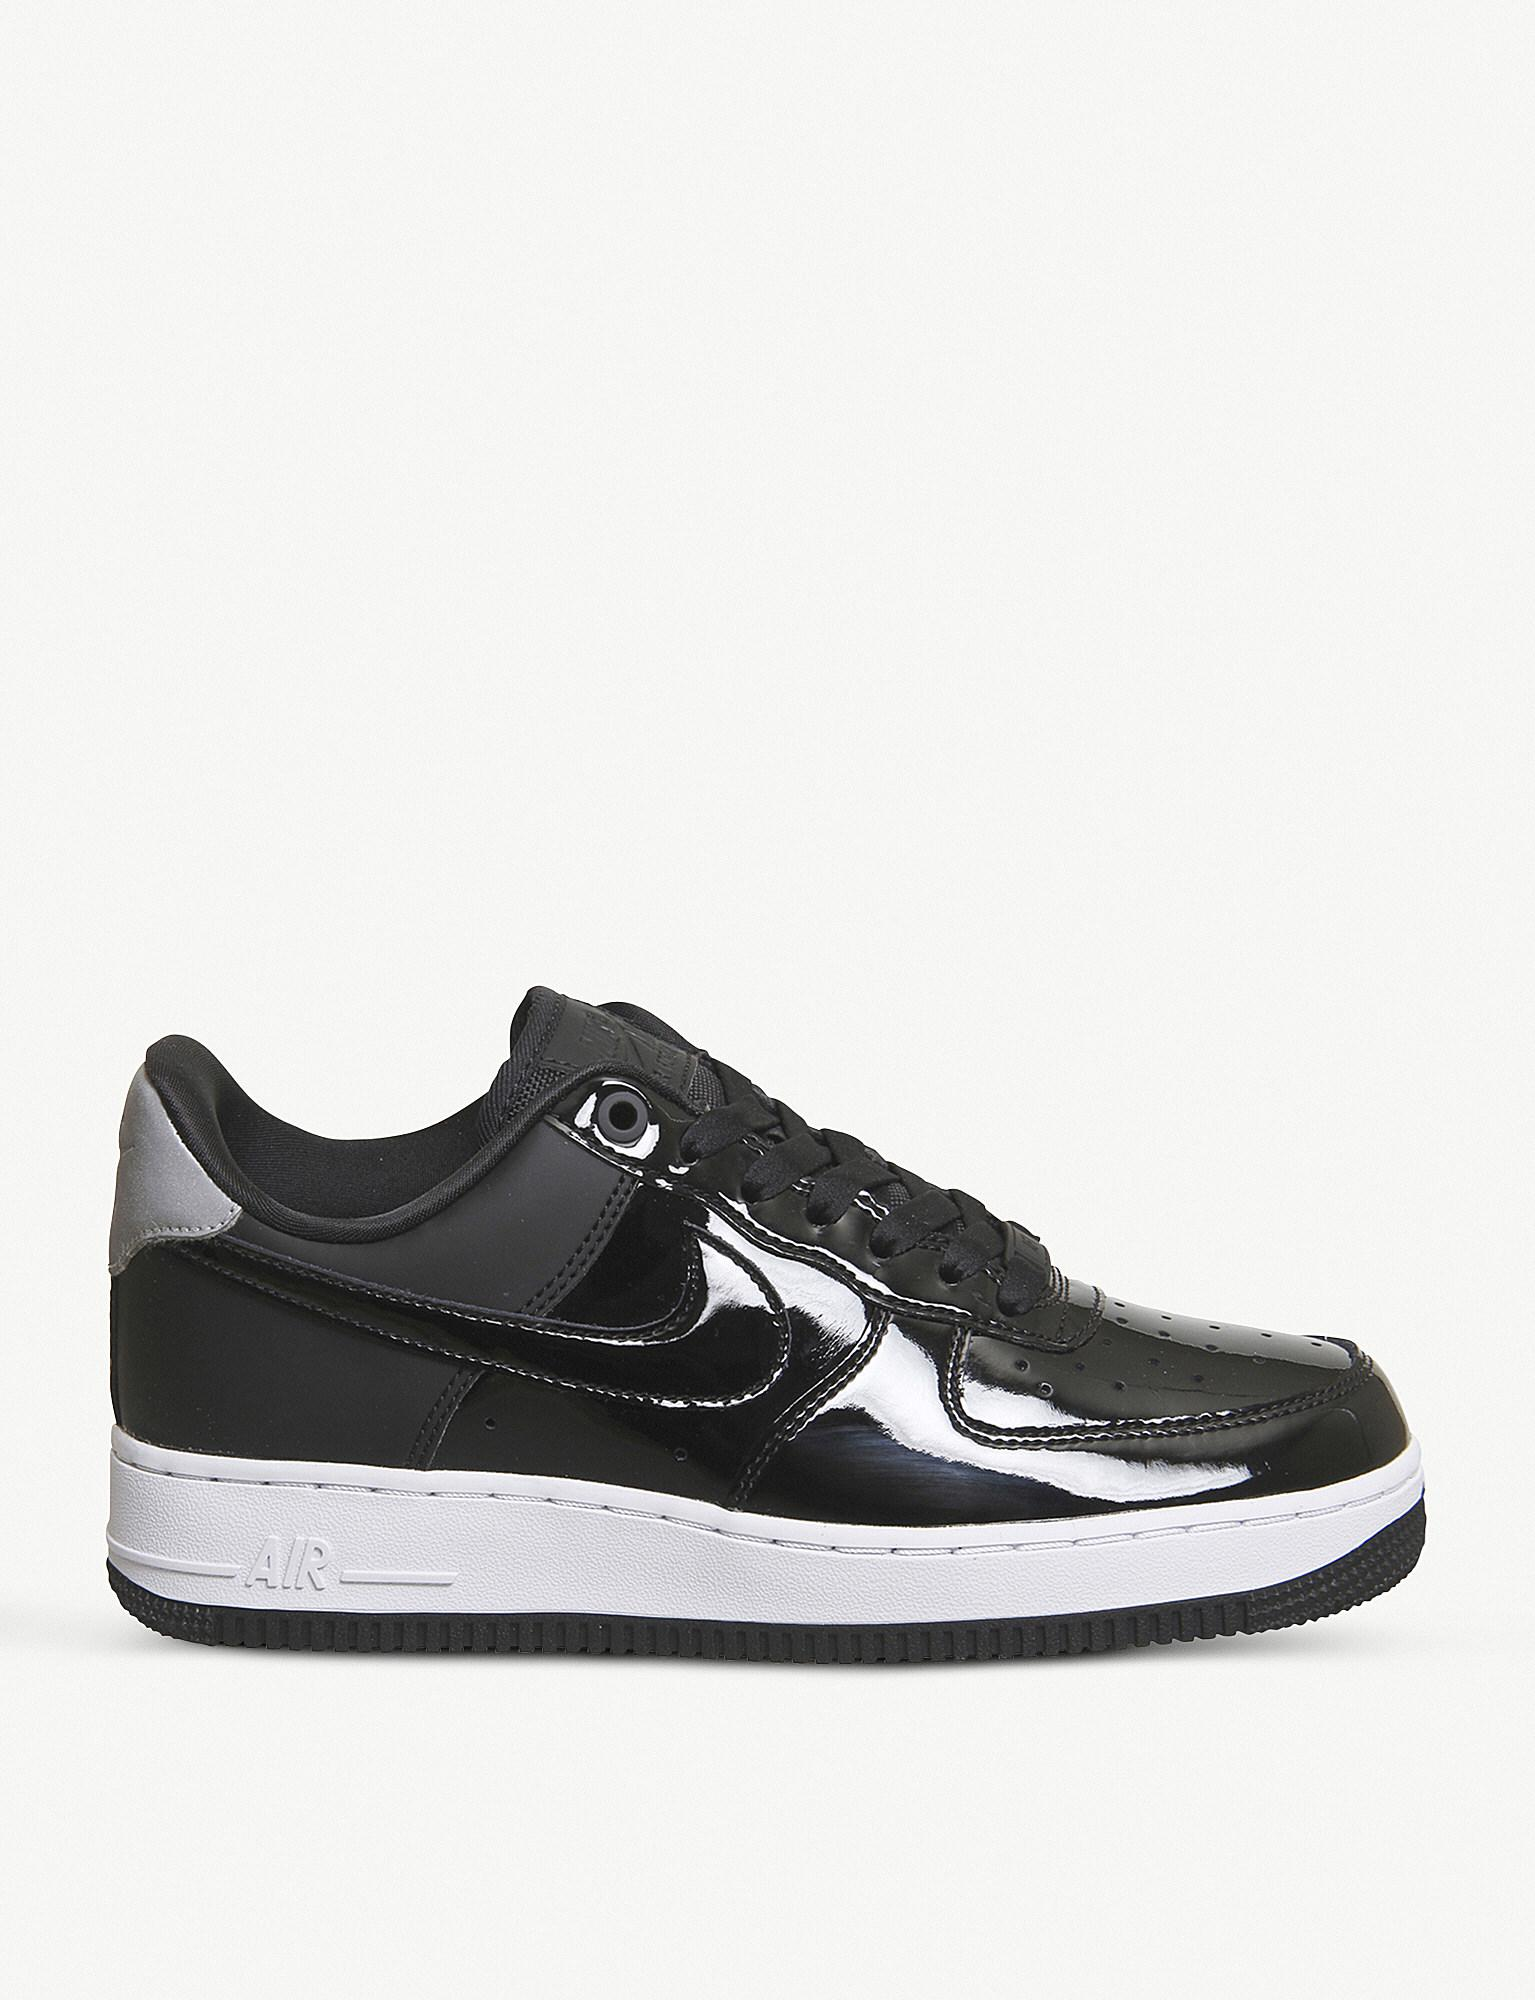 Nike Air Force 1 07 Patent Leather